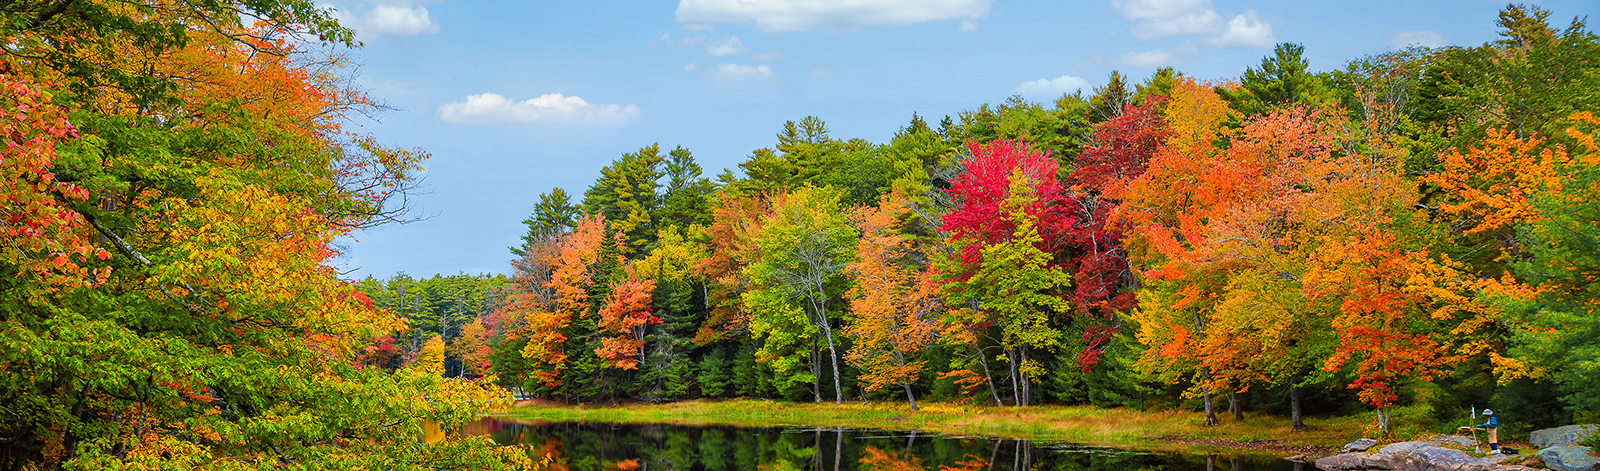 Colorful fall foliage tree reflections in calm pond water